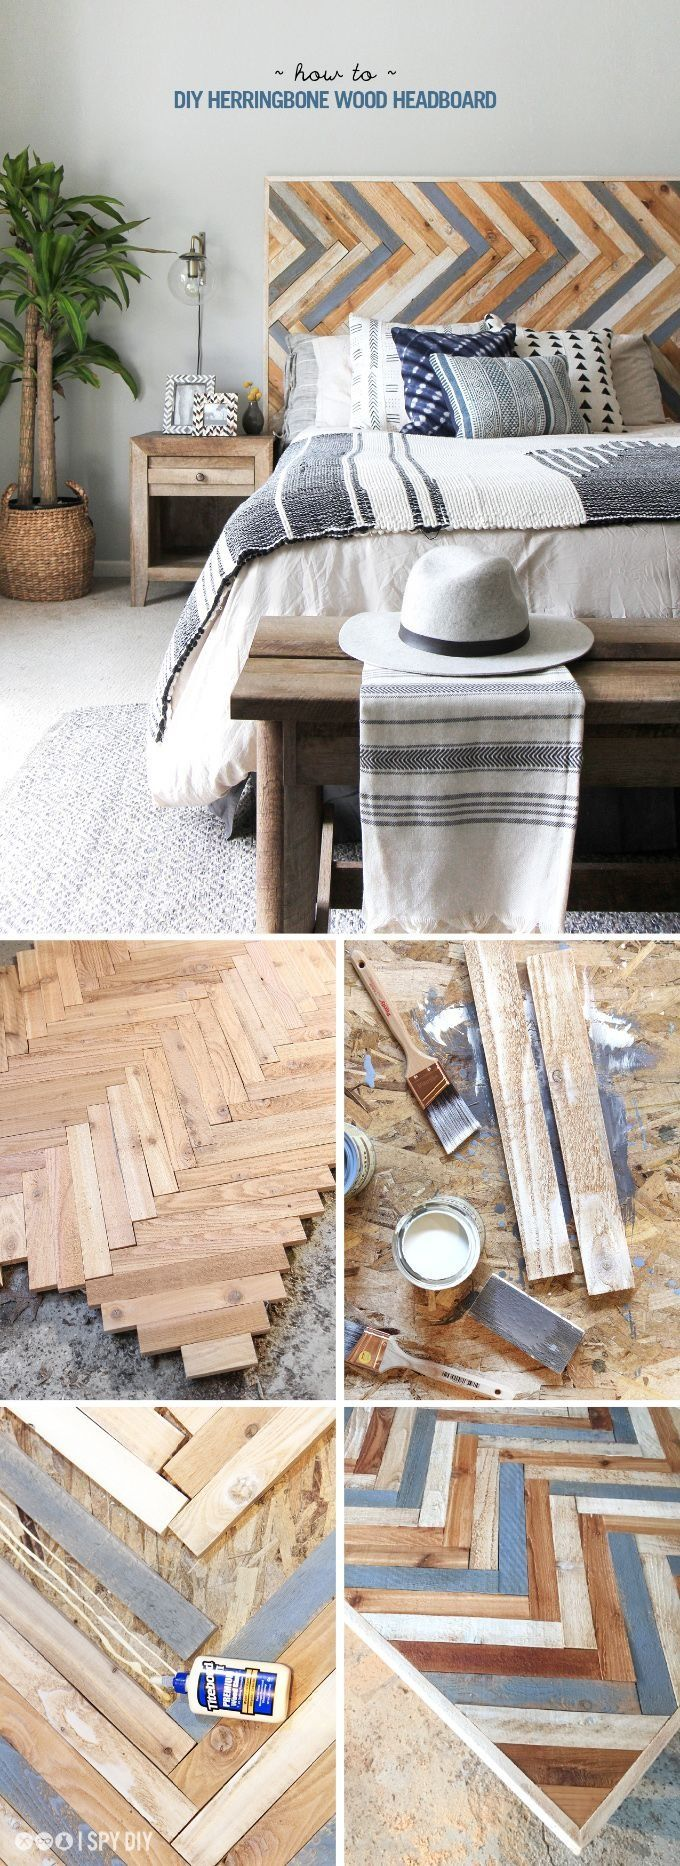 Create a custom headboard in a weekend with some wood and stain. Get started on this herringbone look!